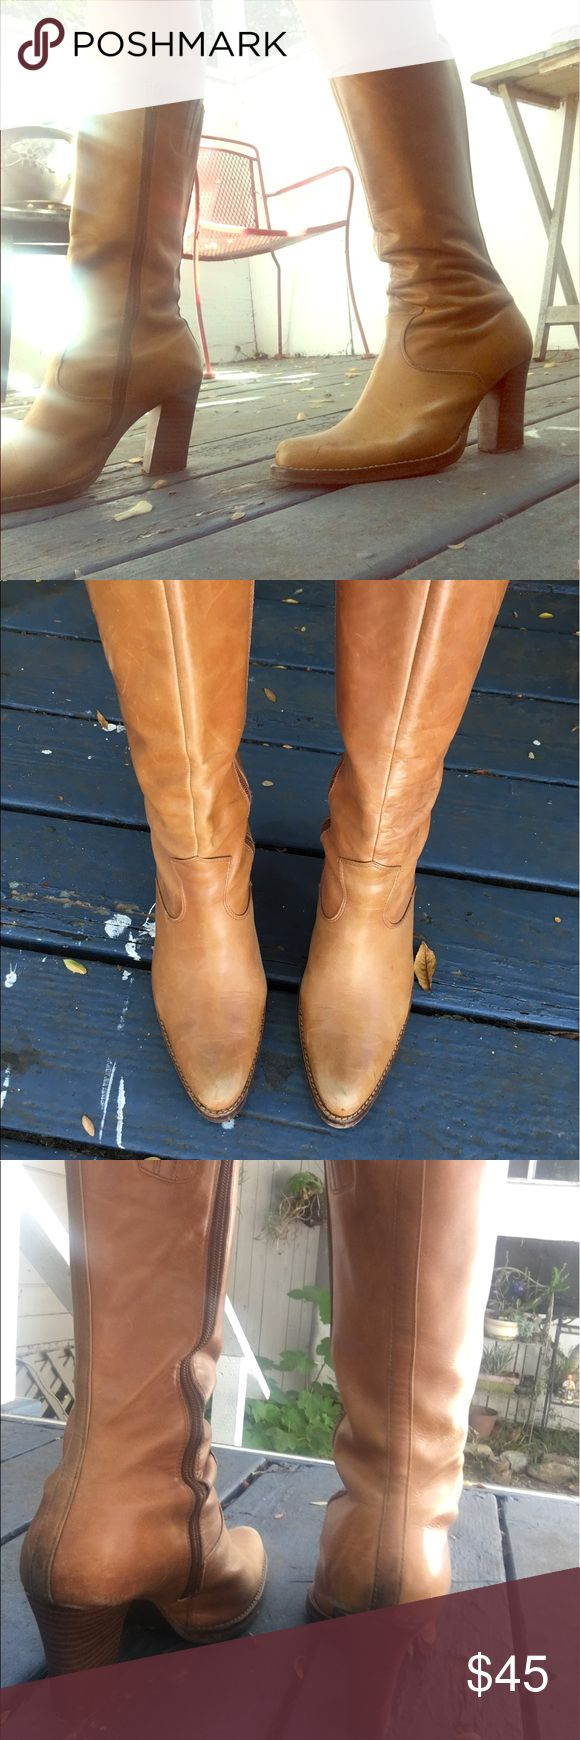 """Vintage Seychelles Tall Tan Leather Boots I love these vintage Seychelle boots with their inside zipper, 3"""" heels, and scuffed vintage charm, but alas, they are too small for my feet! In true vintage form, they are worn in and have rugged scuff marks, which only adds to their charm. Wear with a mini dress, under boot cut pants, or over skinny jeans. So versatile and classic! Seychelles Shoes Heeled Boots"""